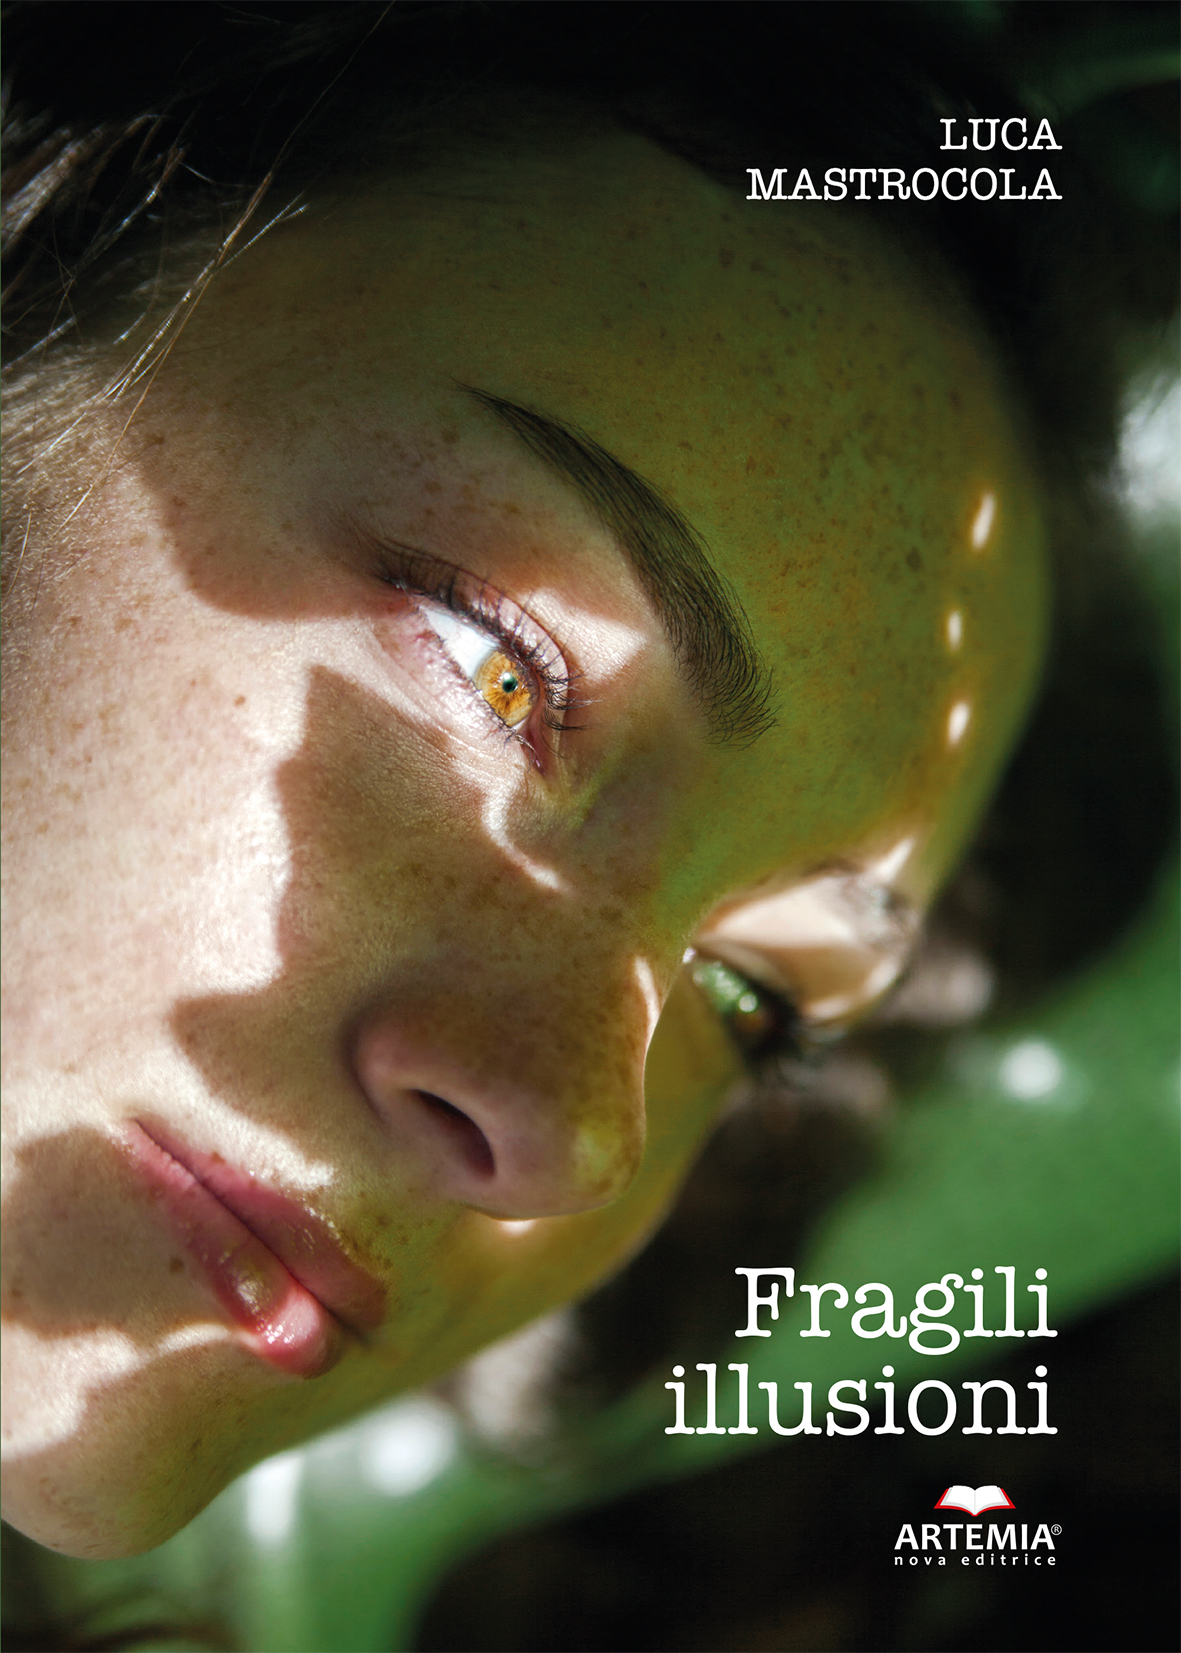 FRAGILI ILLUSIONI